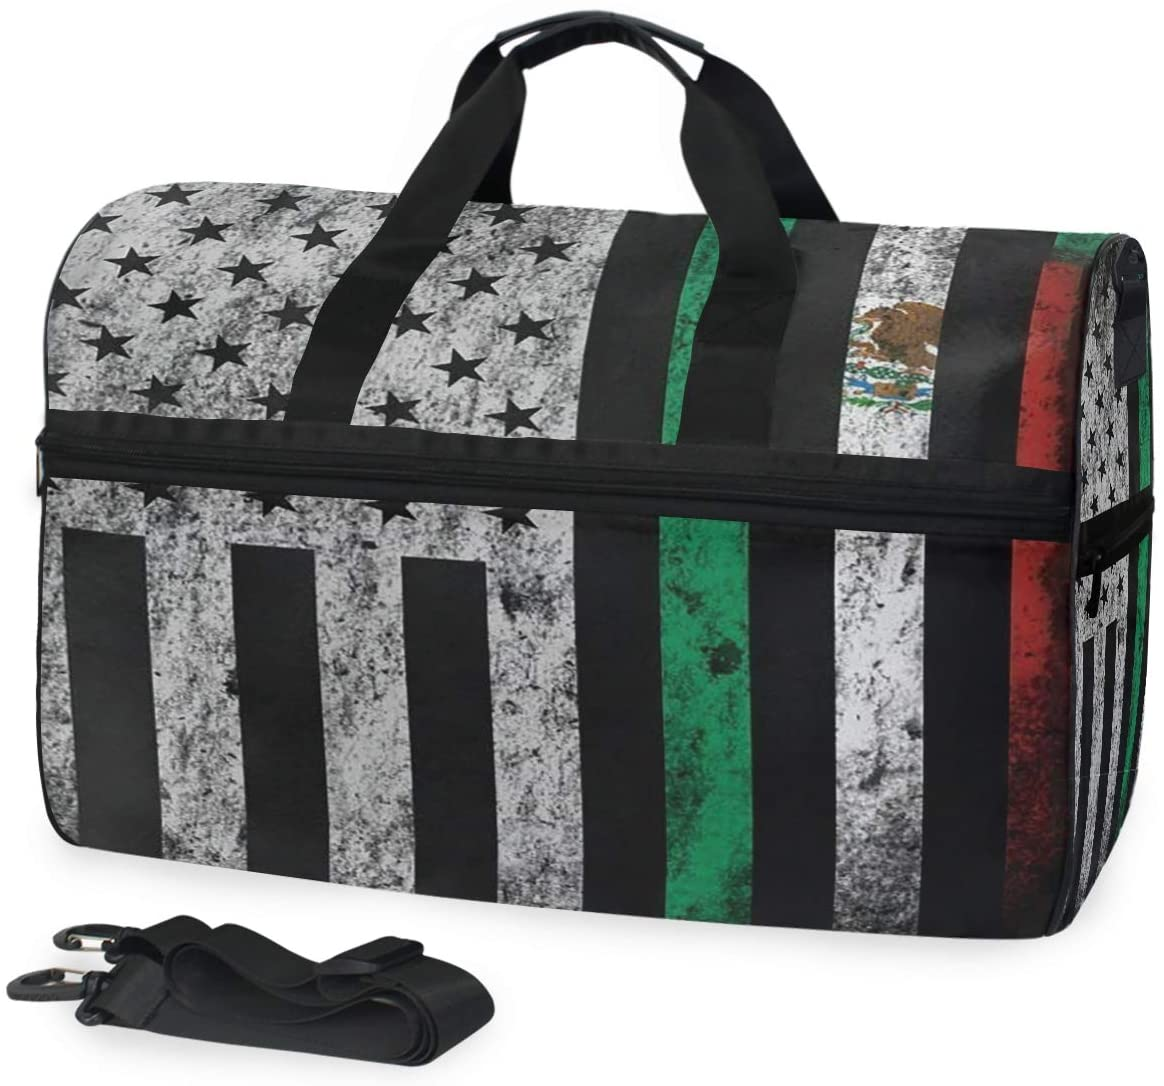 SLHFPX Gym Bag USA And Mexico Flag Combinations Duffle Bag Large Sport Travel Bags for Men Women